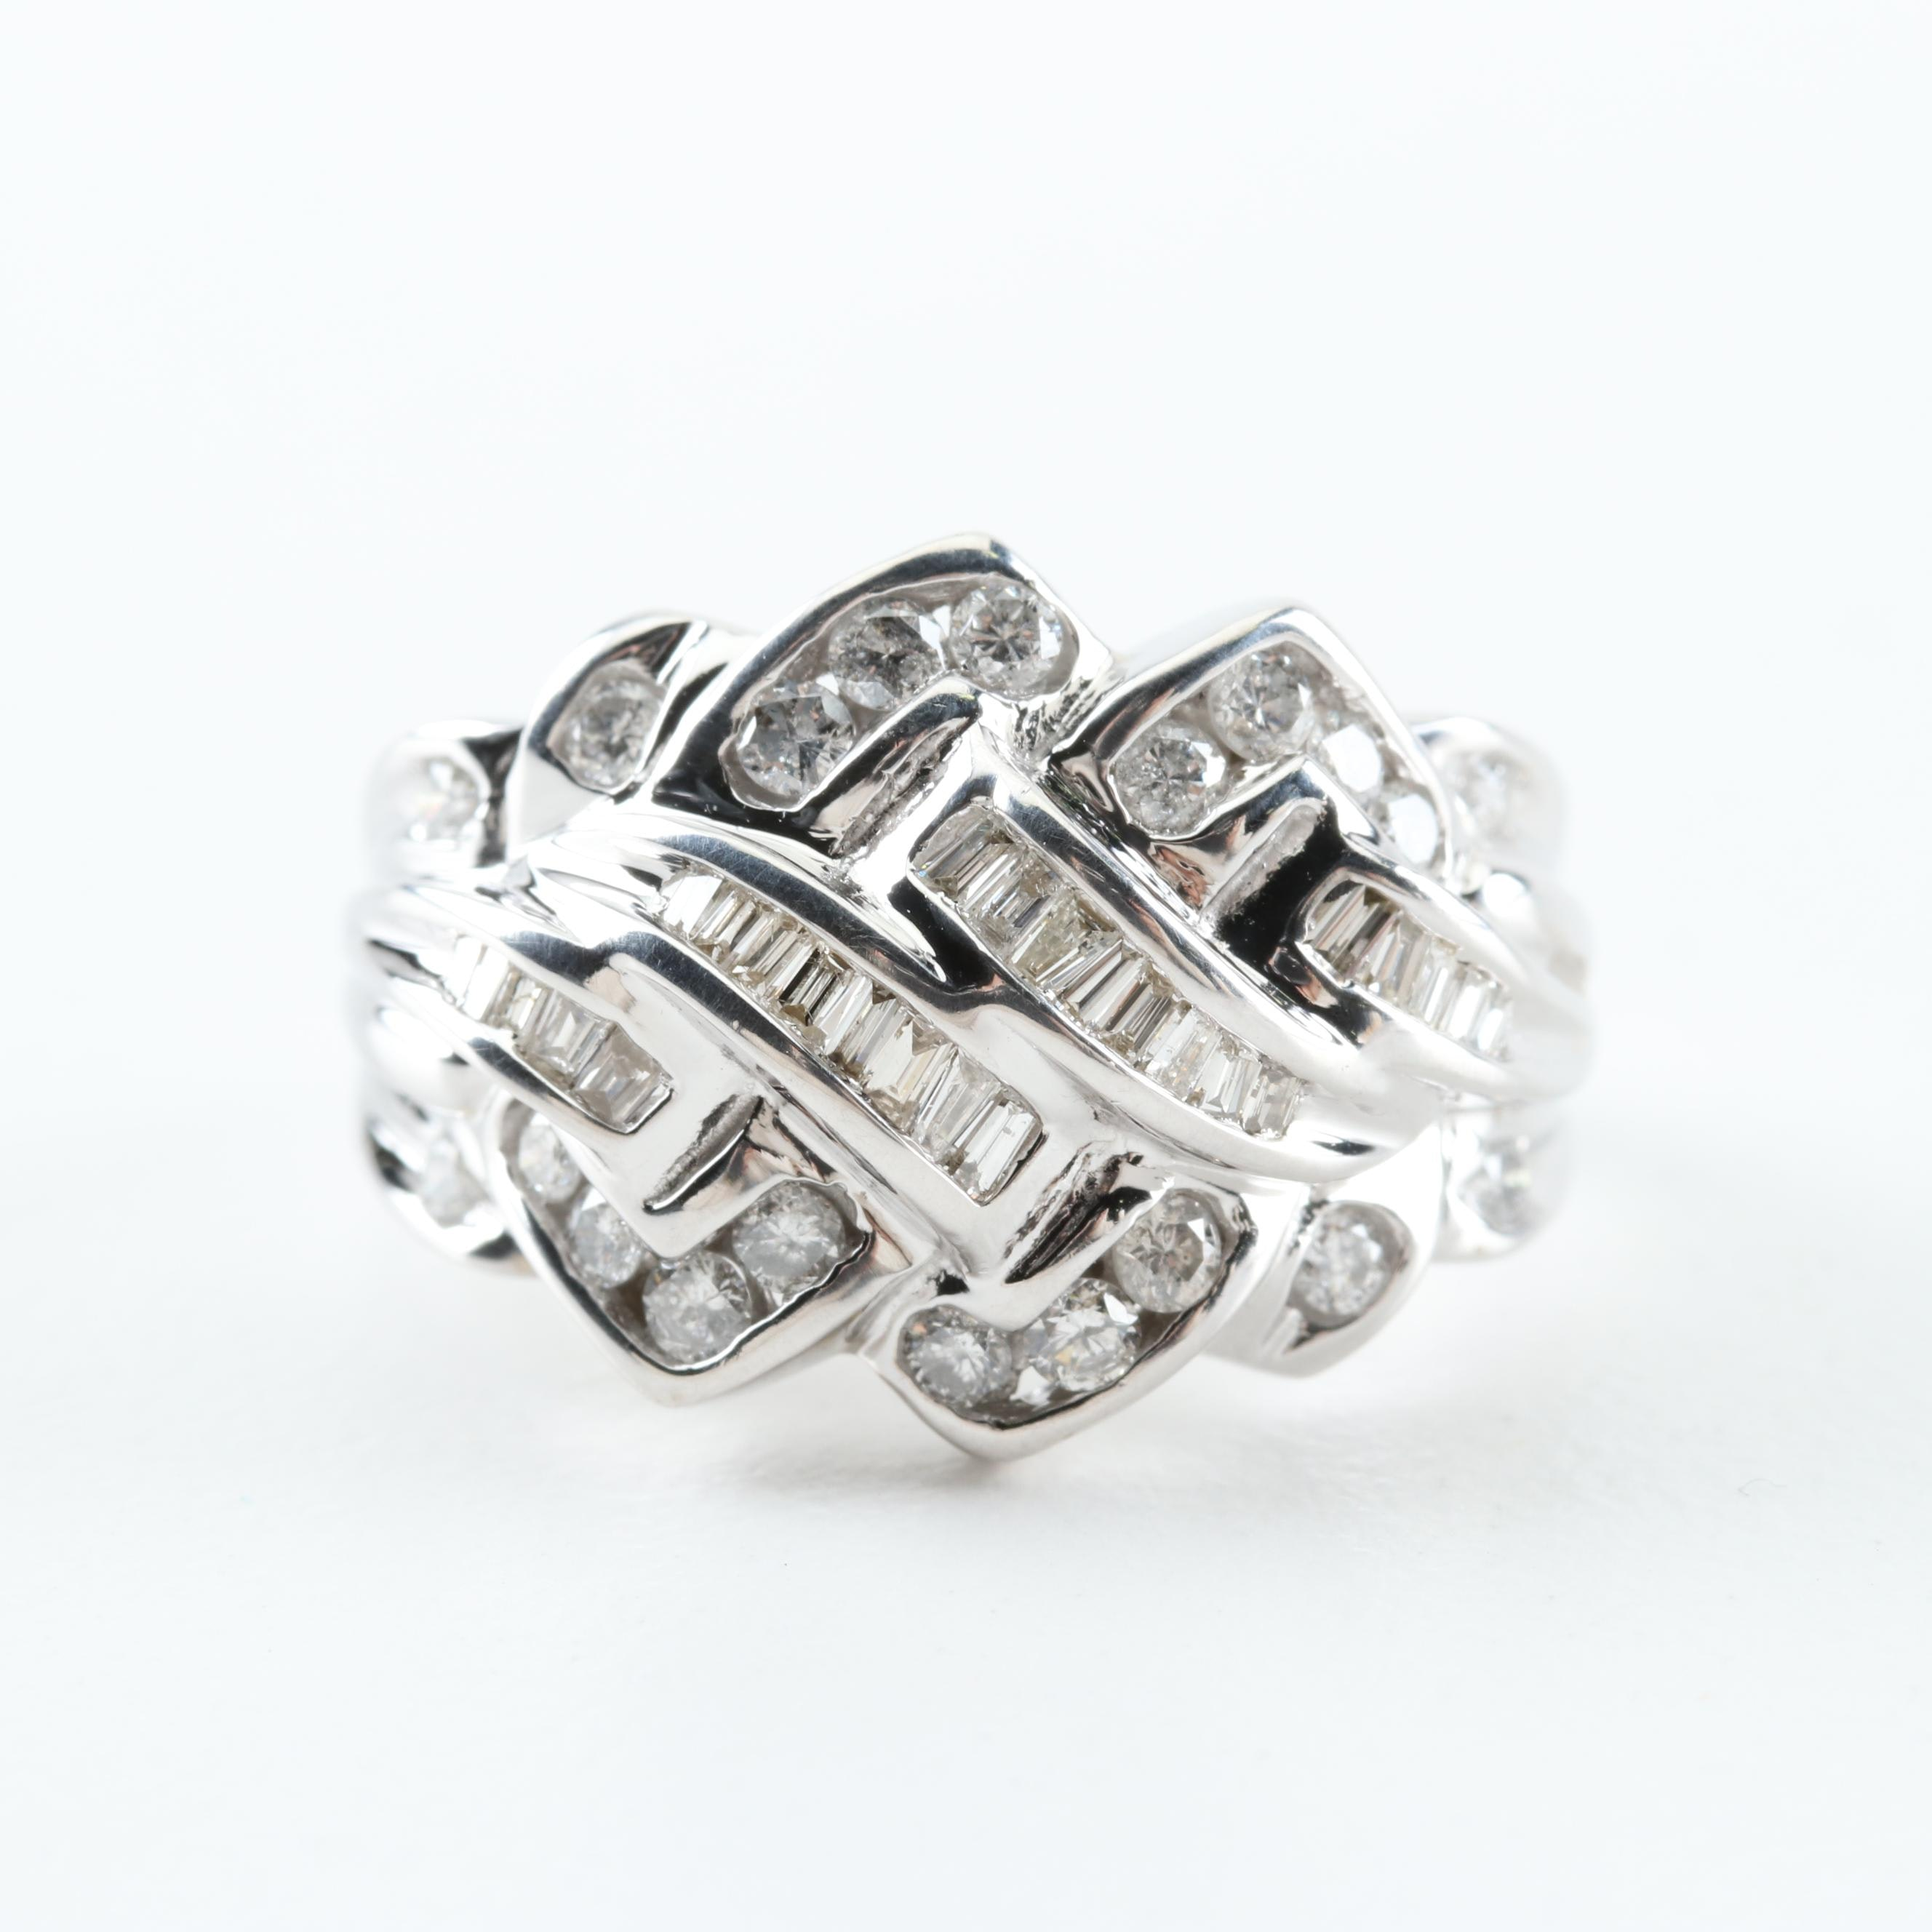 10K White Gold and 1.08 CTW Diamond Ring